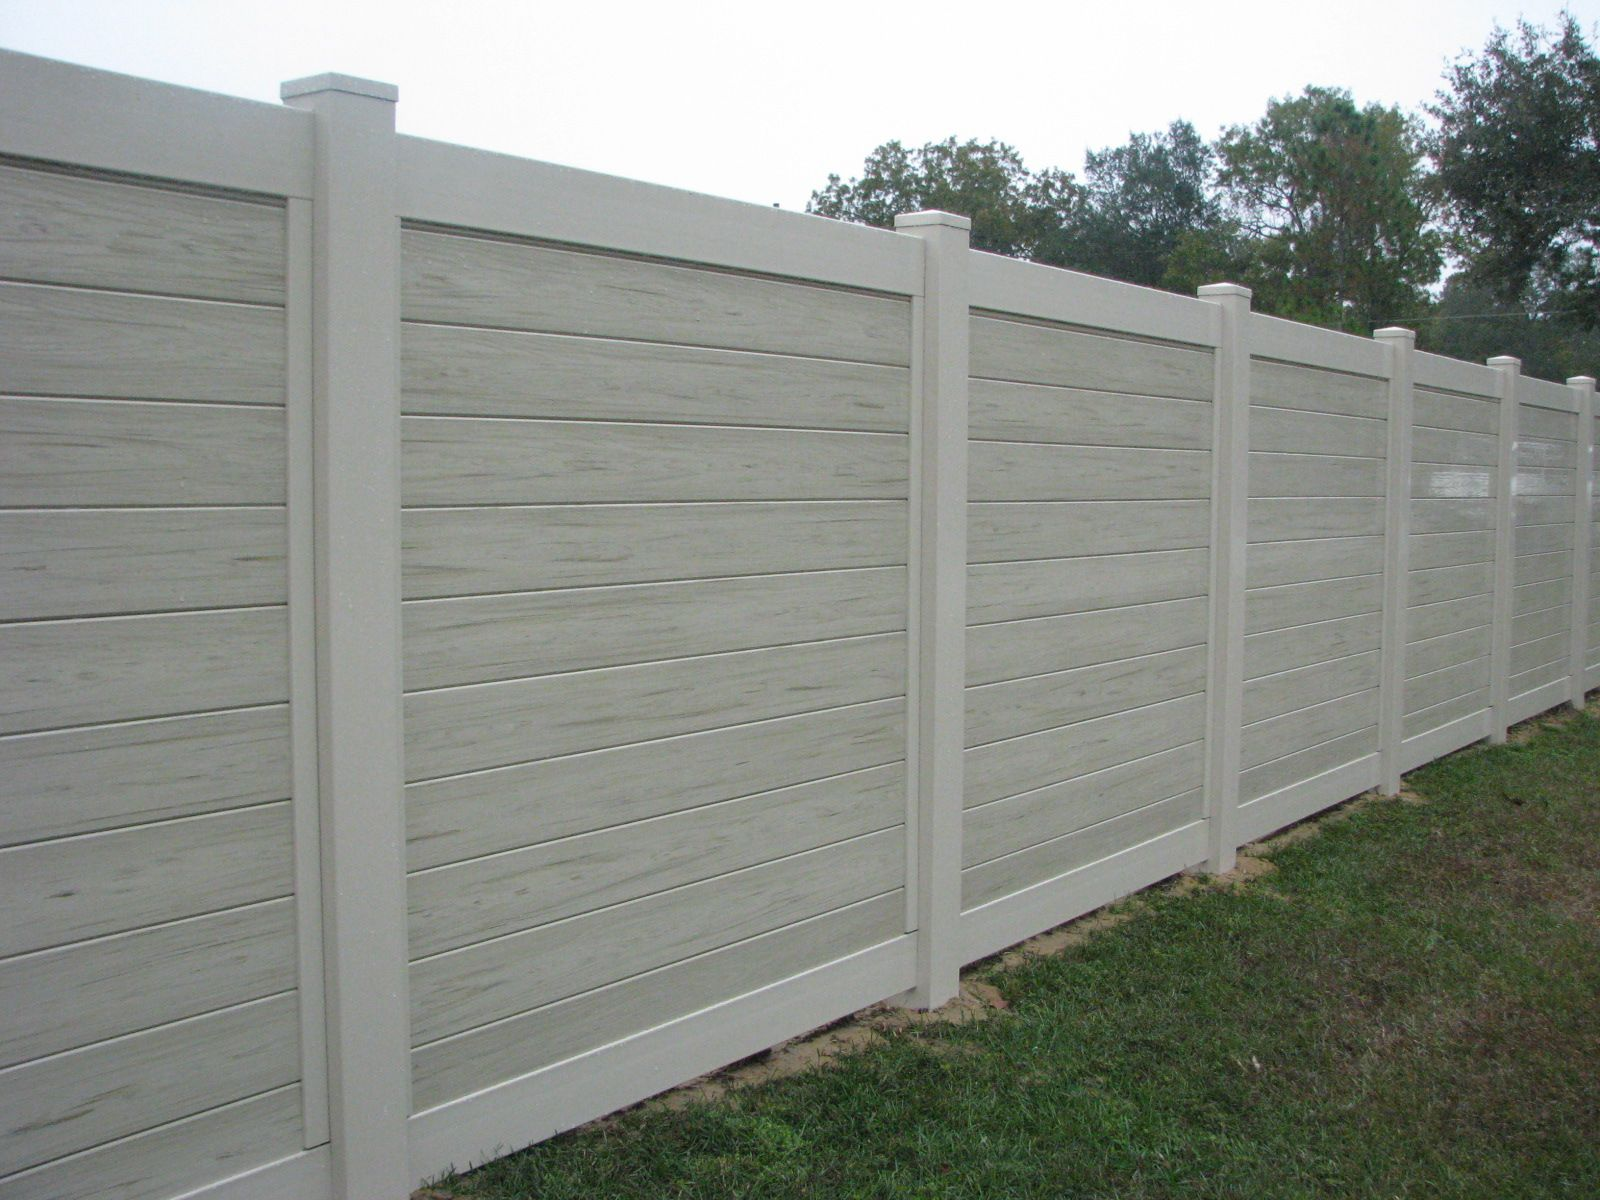 Used Vinyl Fence Panels For Sale Uxu Fence Panels For